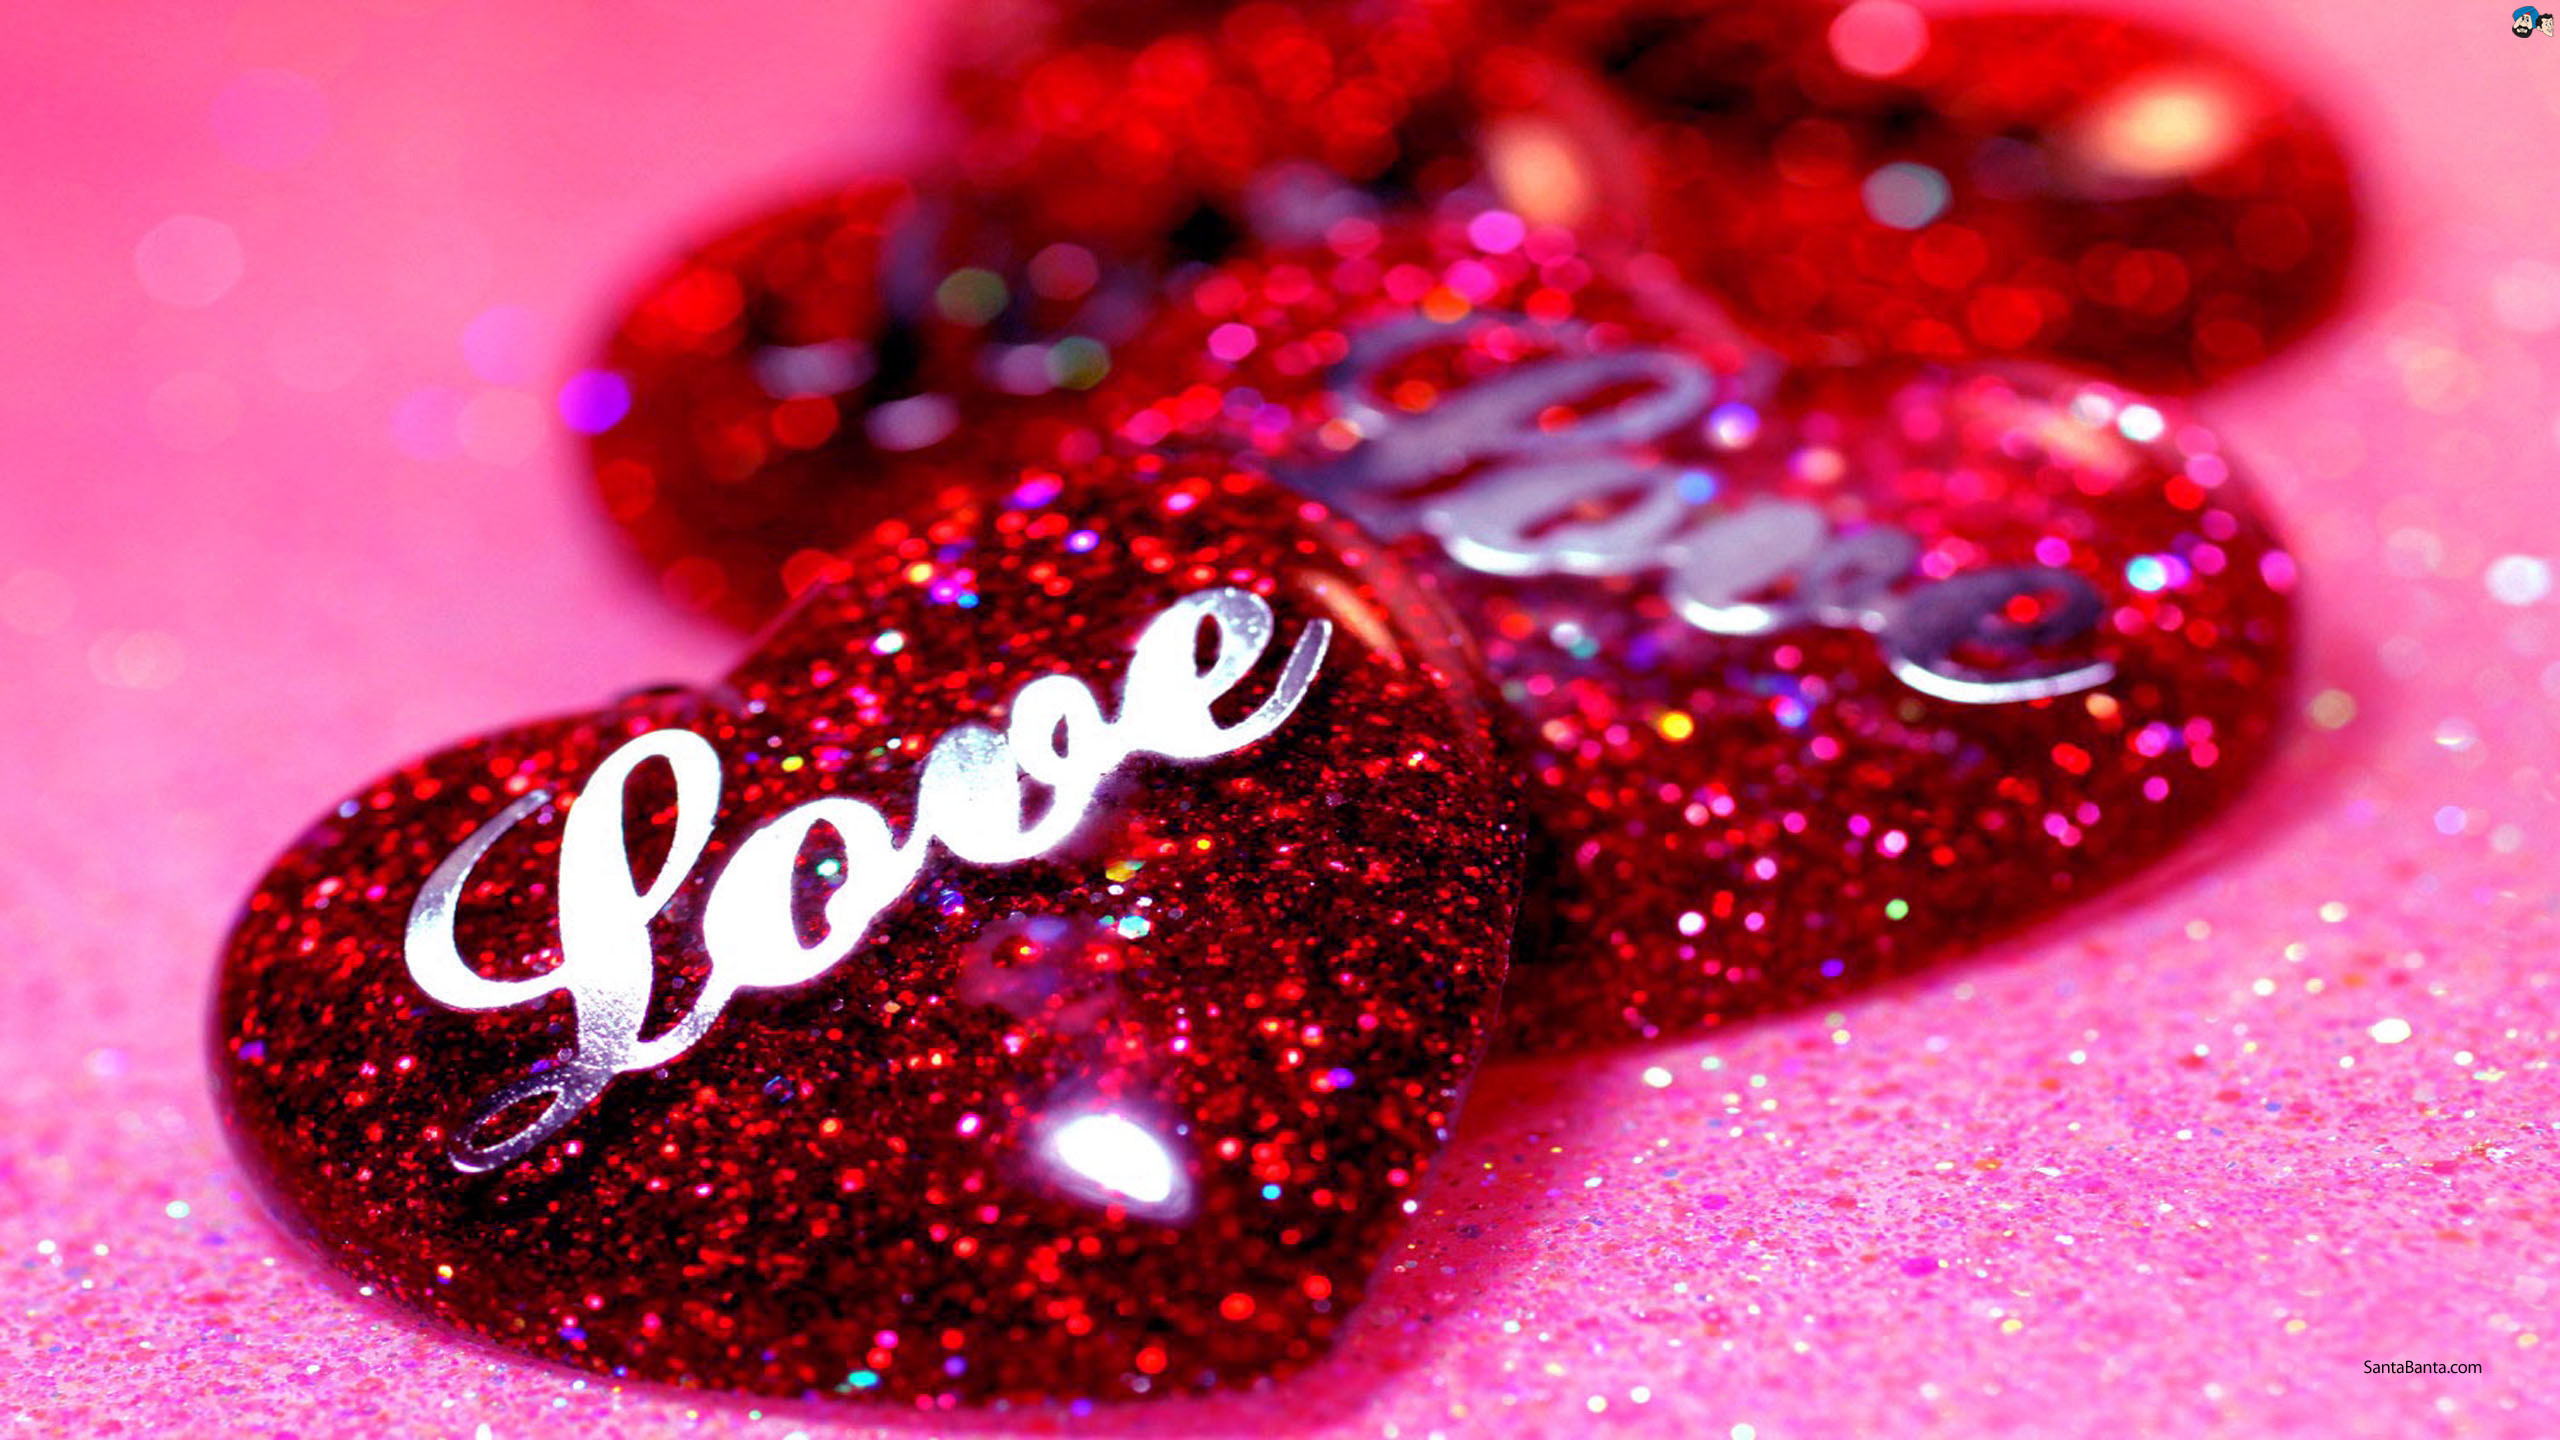 2560x1600 Love Wallpapers High Quality Resolution For Desktop Wallpaper 2560 X 1600 Px 12 MB Animated Tumblr